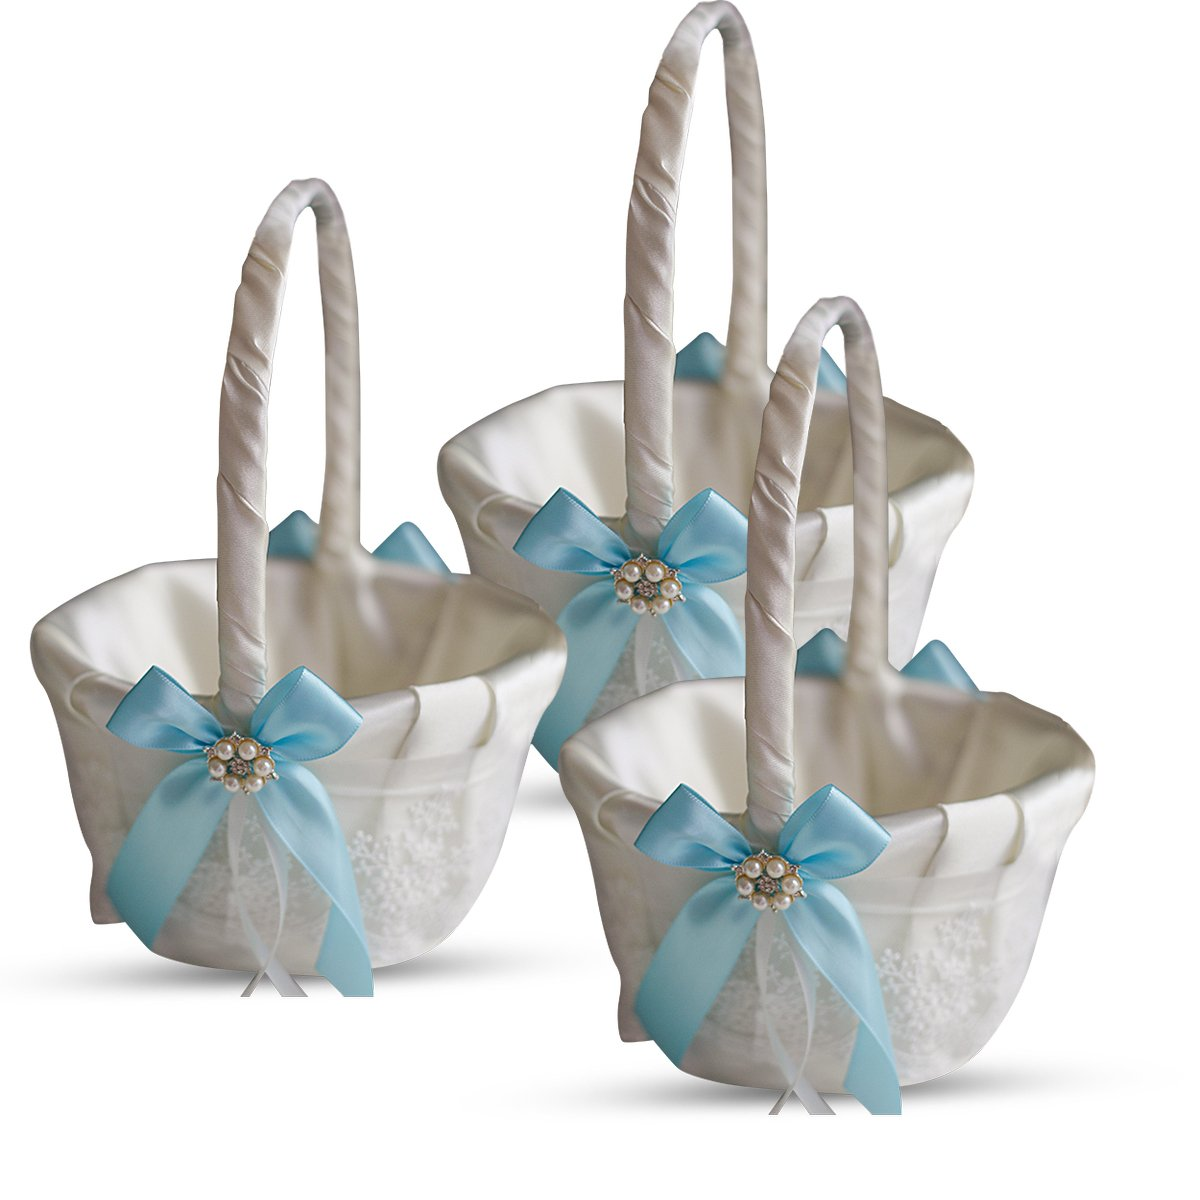 Alex Emotions Ivory Ring Bearer Pillow and Basket Set | Lace Collection | Flower Girl & Welcome Basket for Guest | Handmade Wedding Baskets & Pillows (Sky Blue)